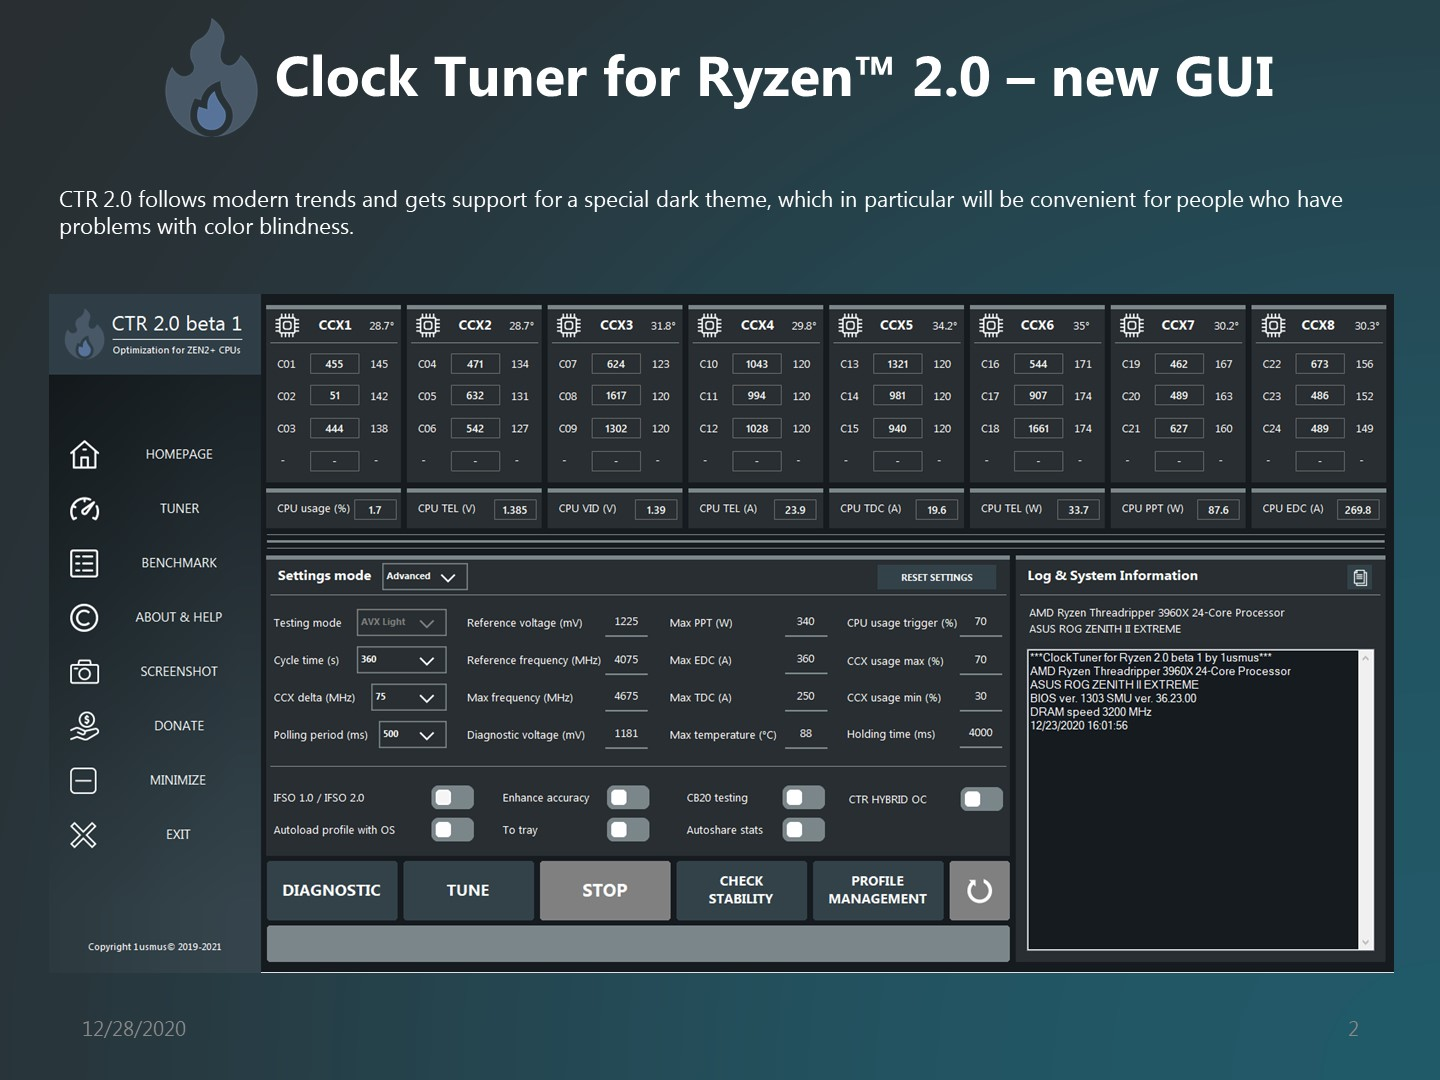 Clock Tuner For Ryzen 2.0 Now Available For Download, Adds Zen 3 'Ryzen 5000' CPU Support, Hybrid OC, Phoenix Mode & More